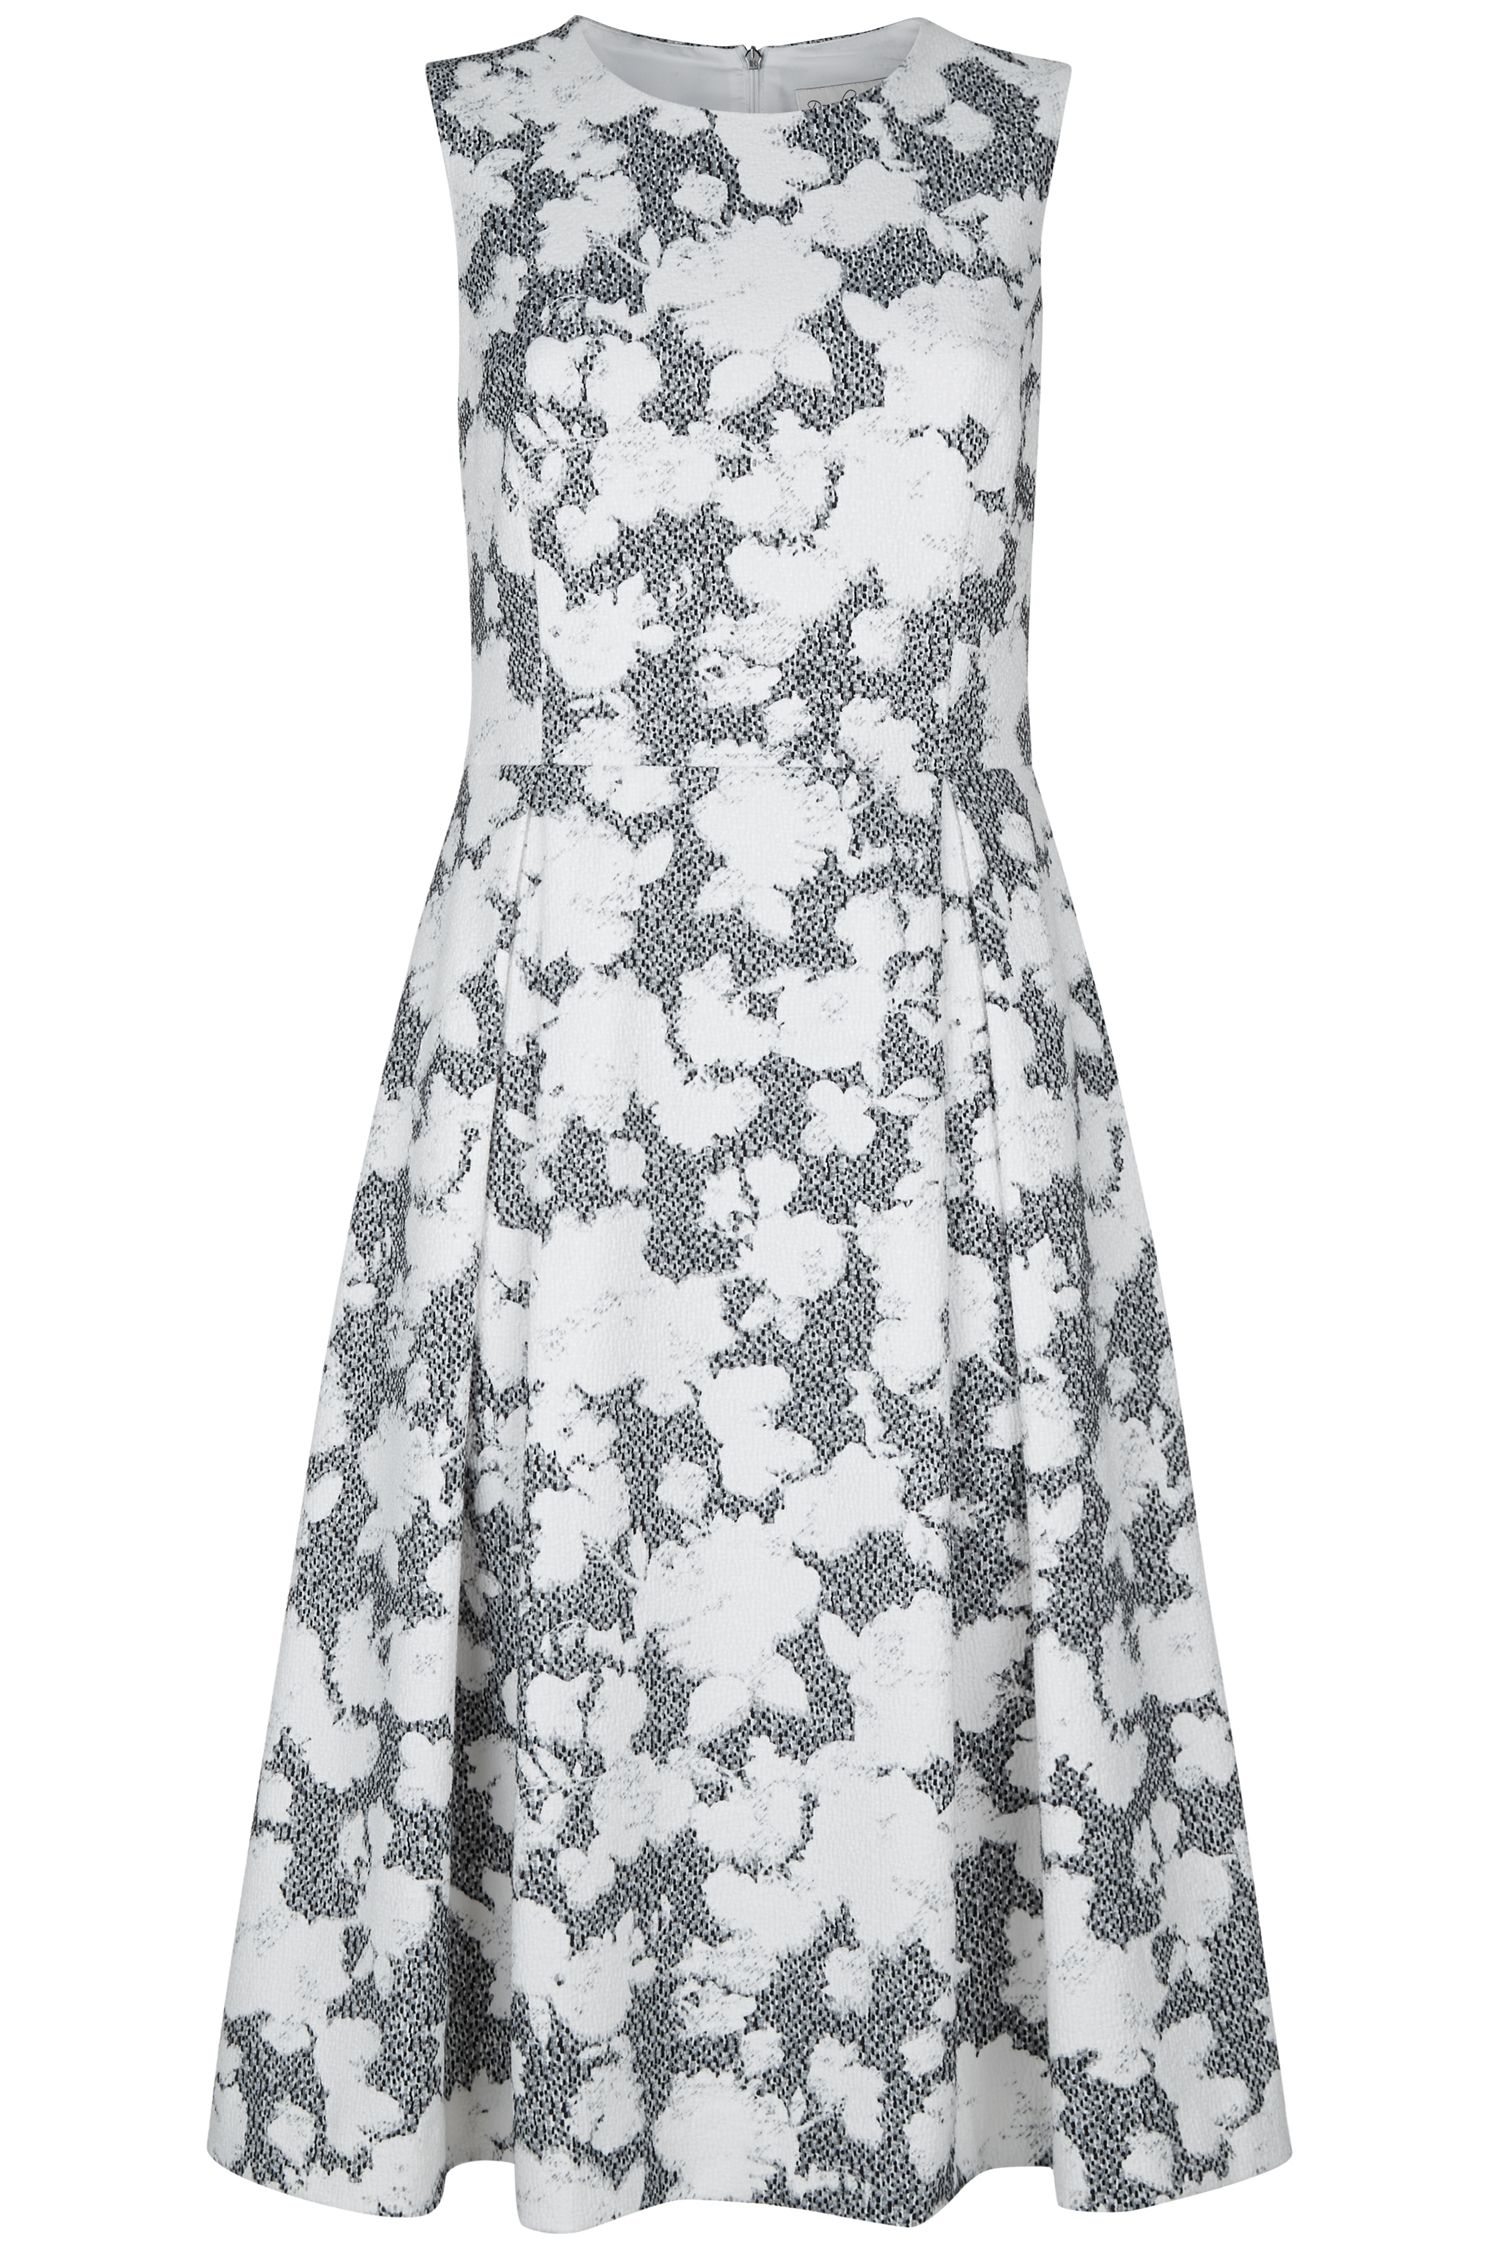 Damsel in a Dress Floral Corset Maya Dress, Black & White